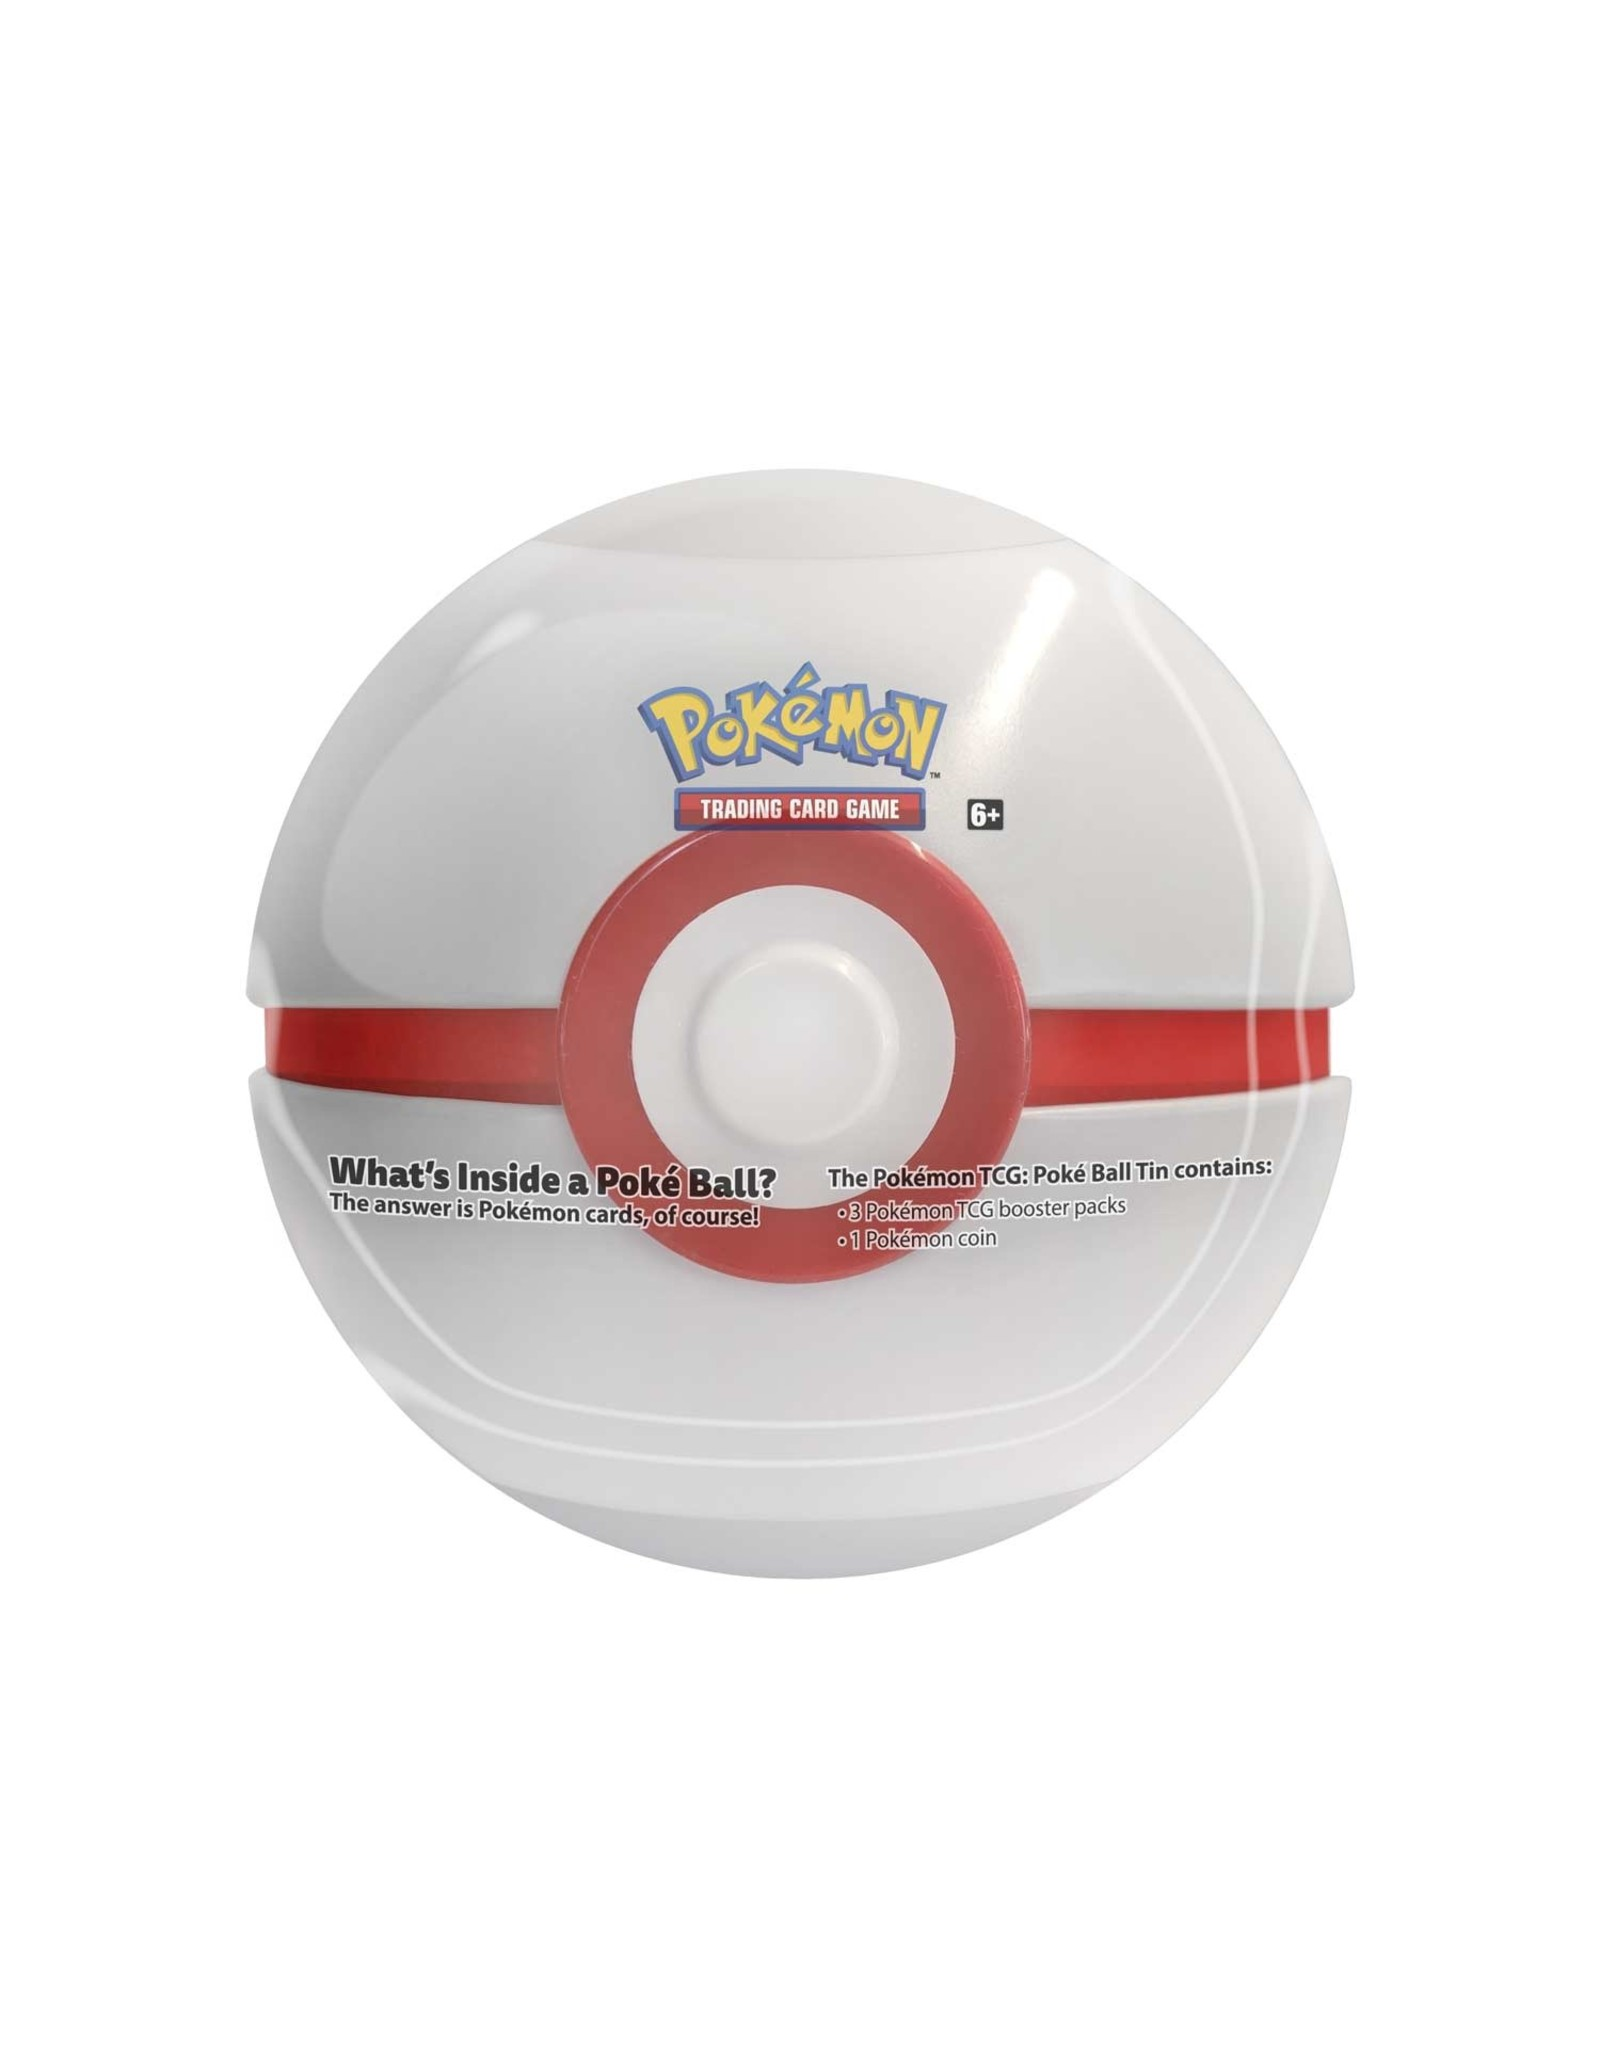 Pokémon Pokemon Poke Ball Tin Premium Ball